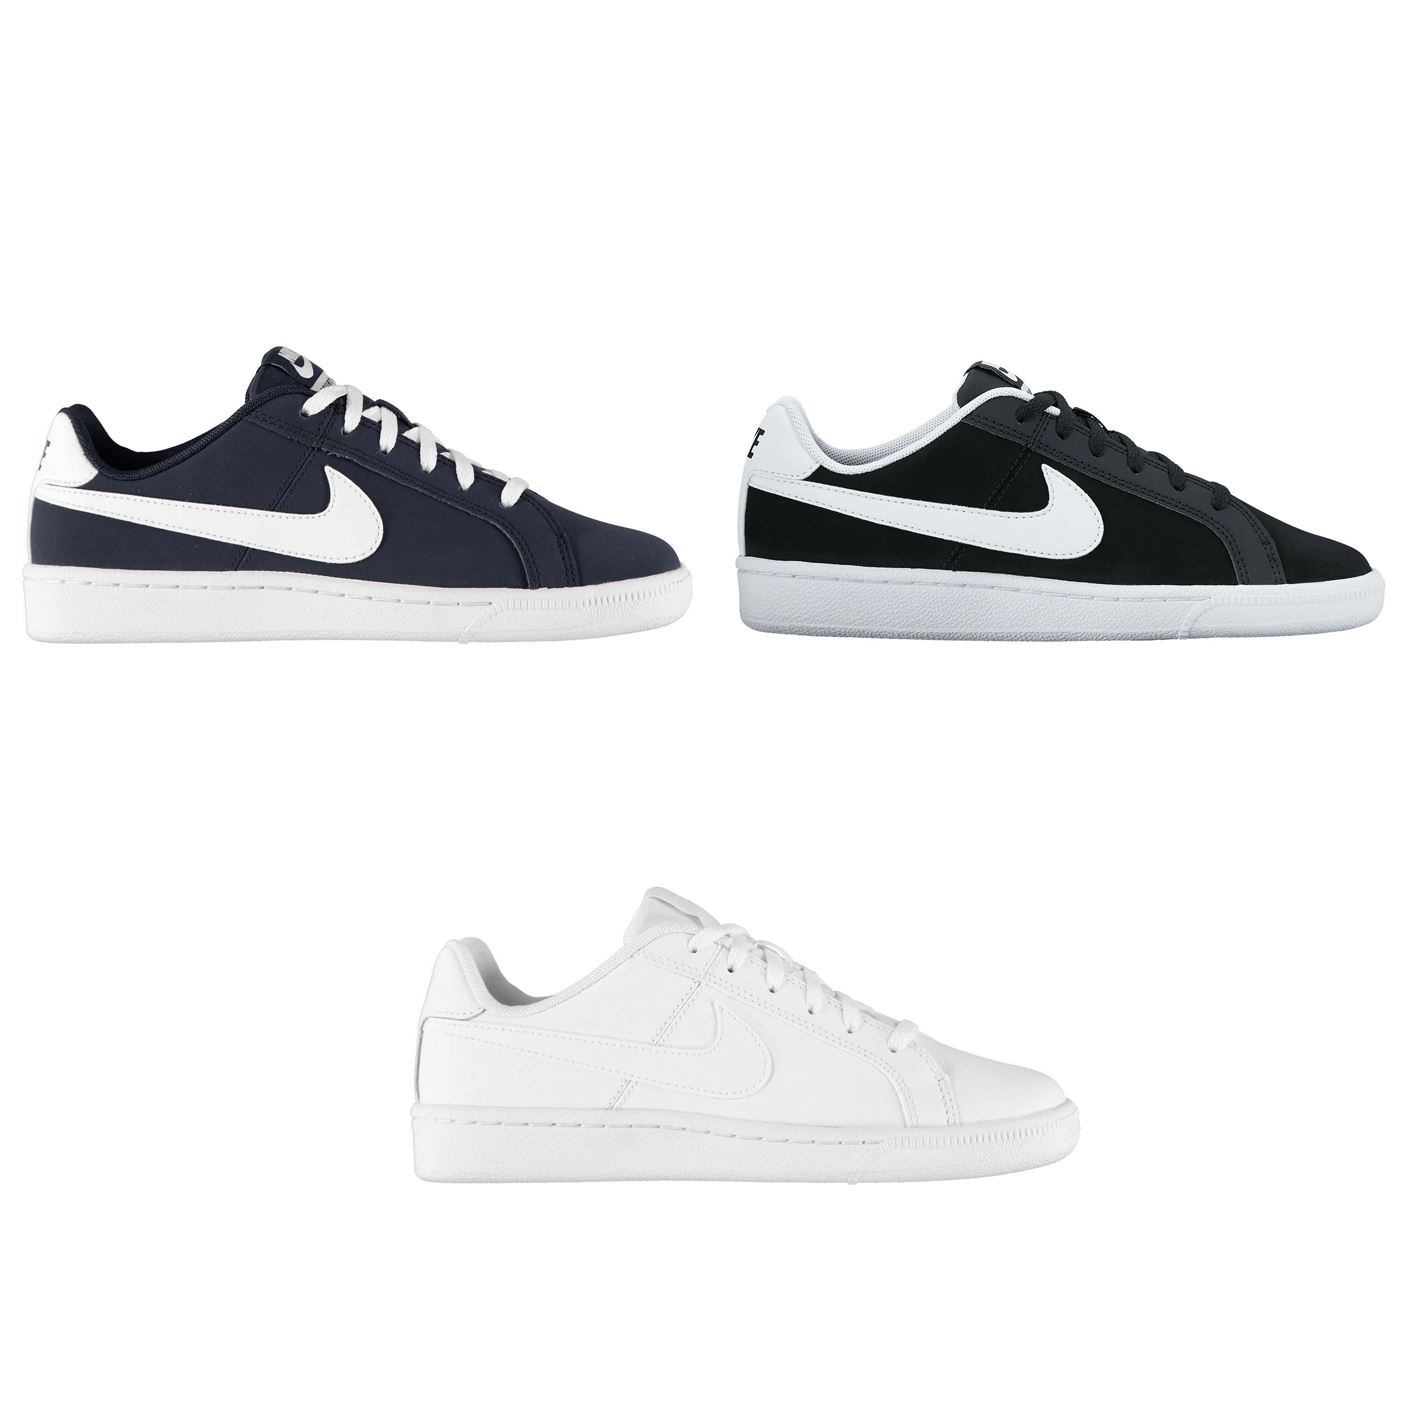 Details about Nike Court Royale Junior Boys Trainers Shoes Footwear